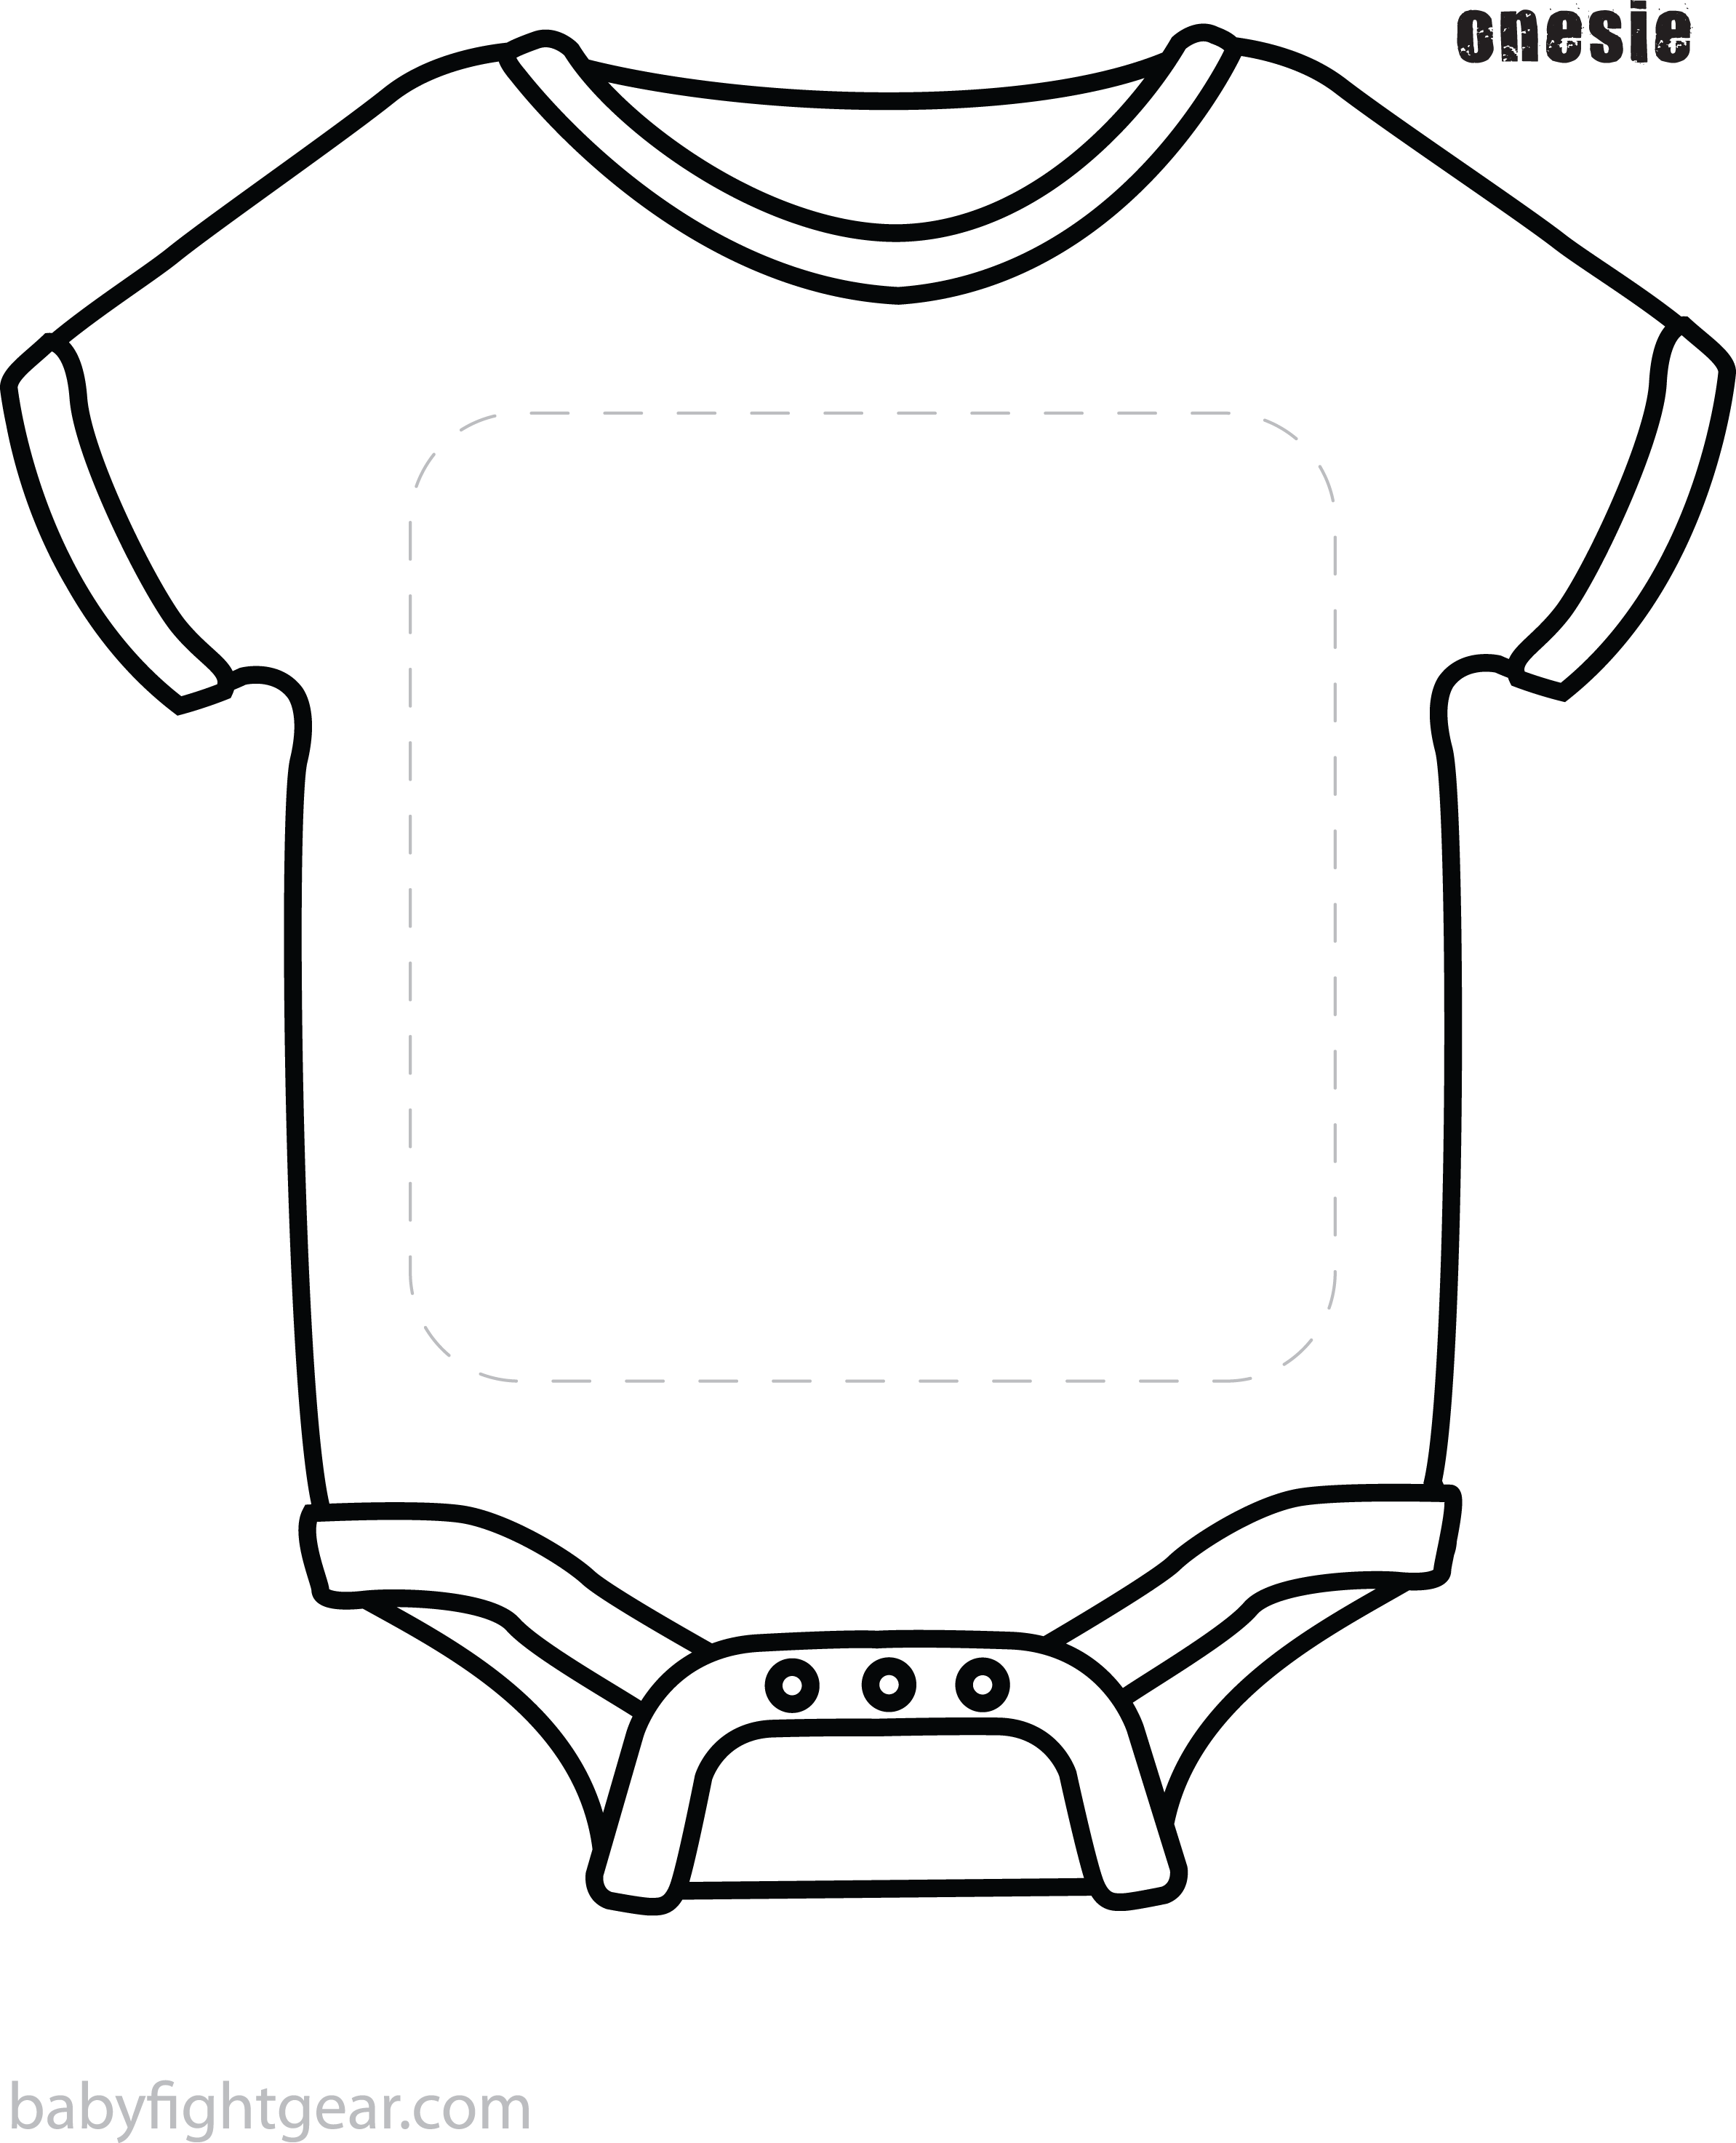 View Full Size Baby Onesie Template Png Clipart And Download Transparent Clipart For Free Like It And Pin It Baby Onesie Template Baby Clip Art Baby Onesies